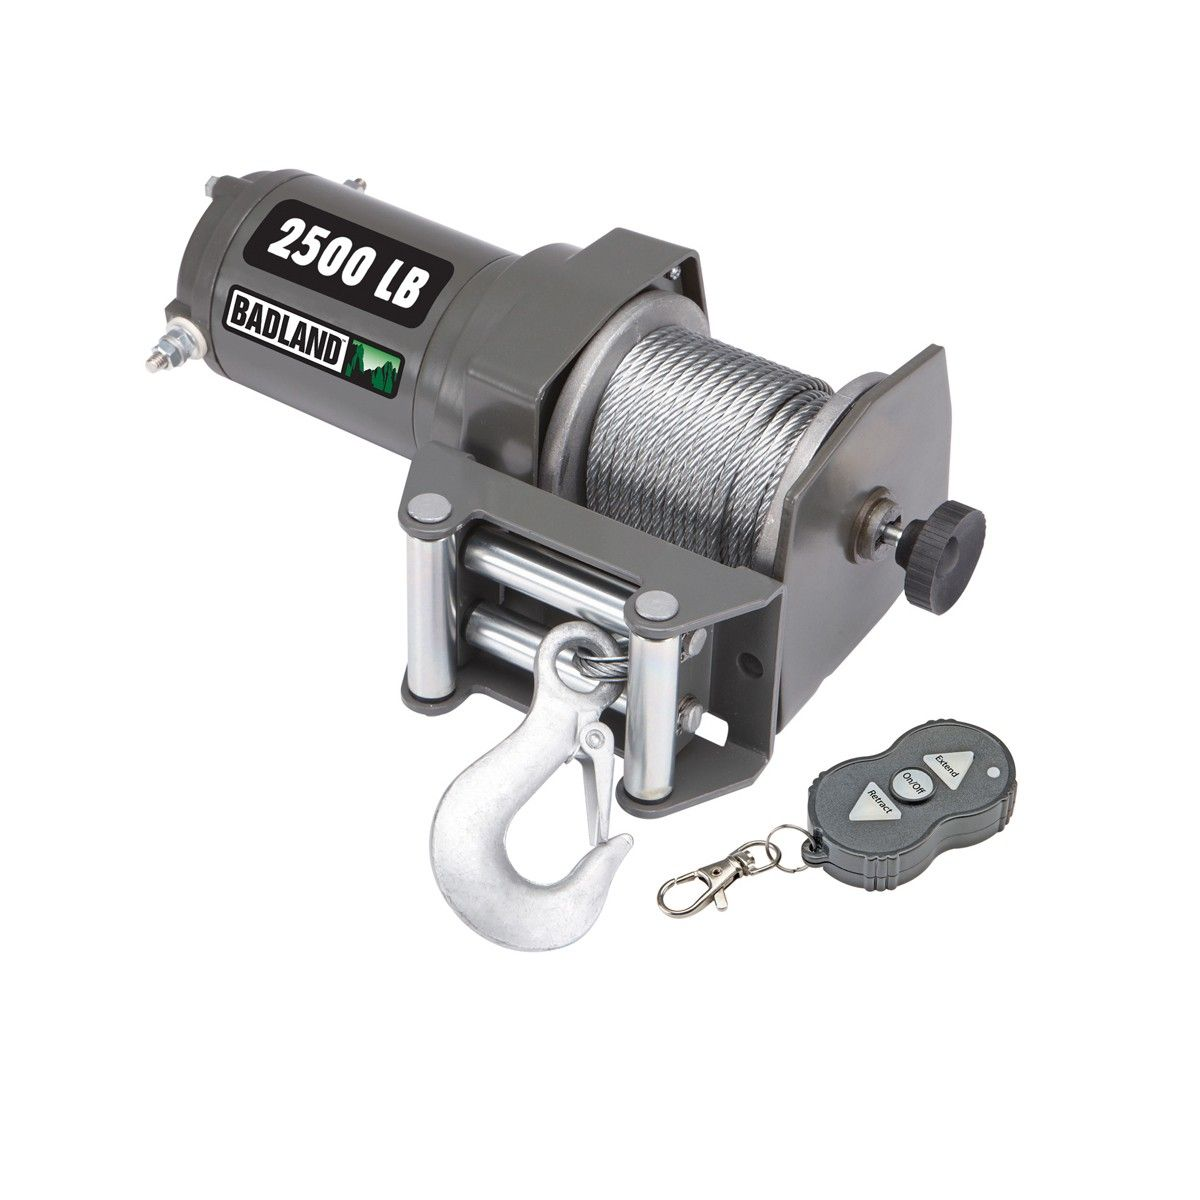 2500 Lbs  ATV/Utility Electric Winch with Wireless Remote